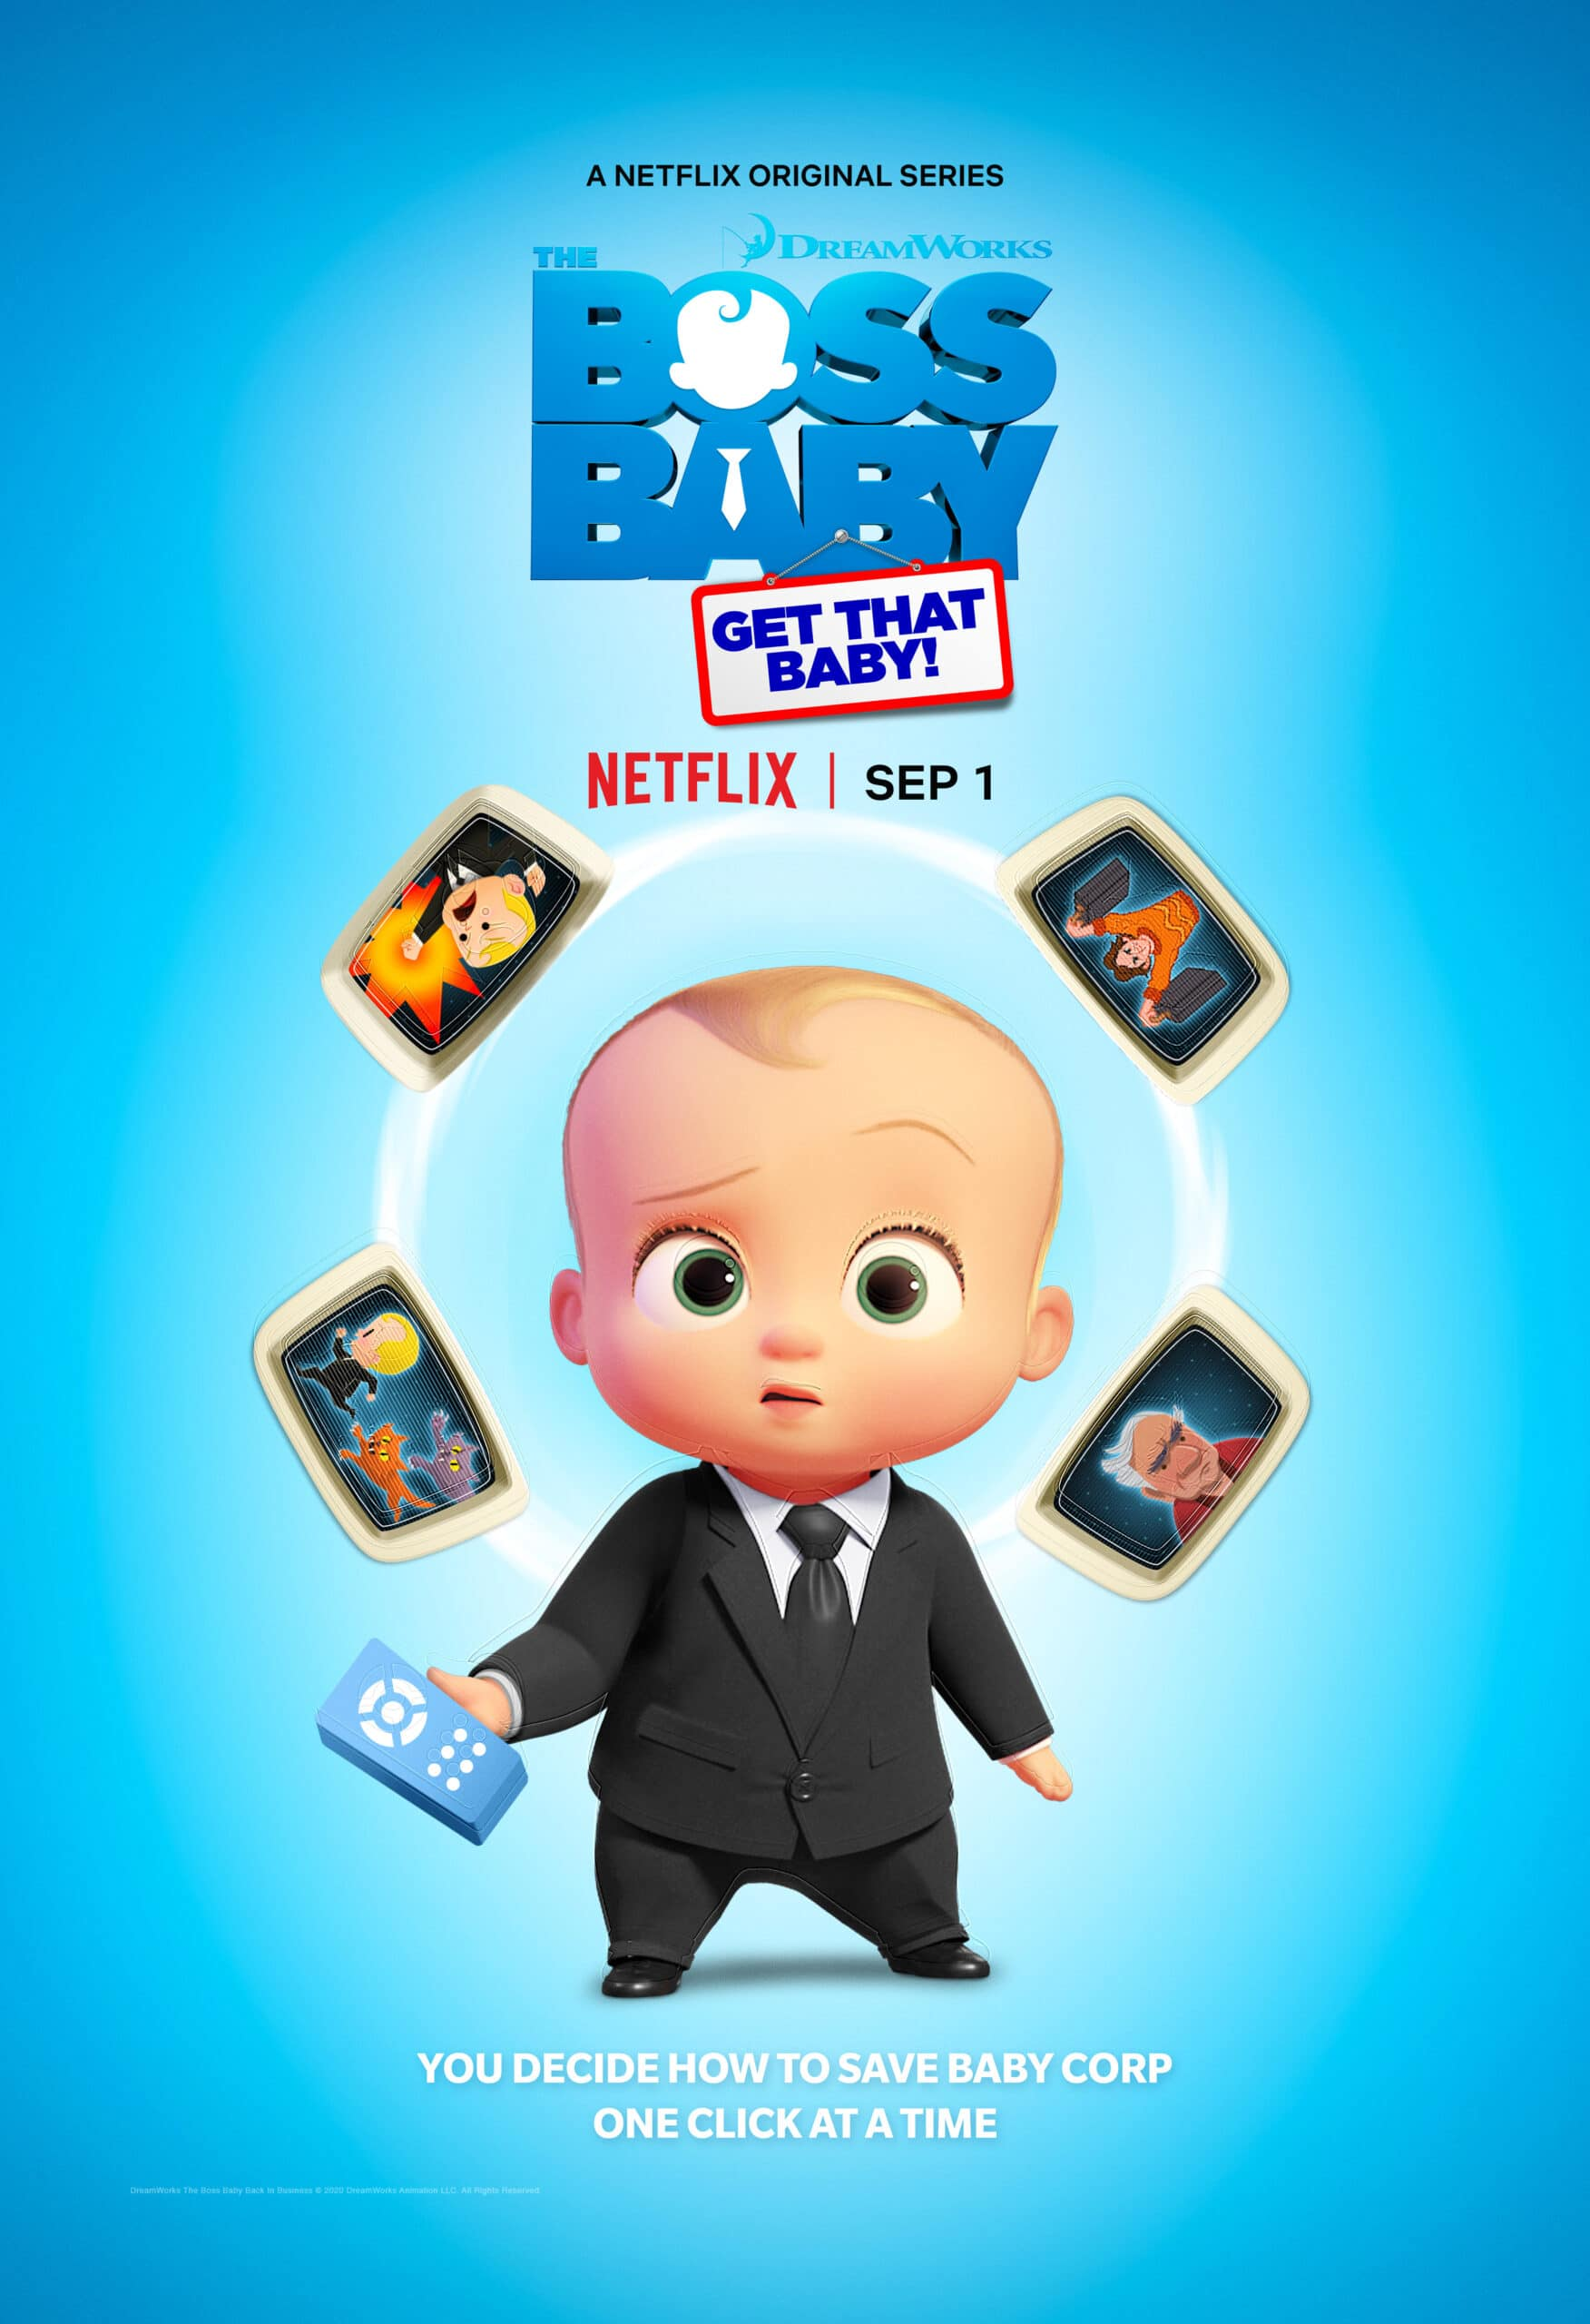 DreamWorks The Boss Baby: Get That Baby!. Welcome to the Baby Corp Job Simulator! Through a series of interactive (and hilarious) choices, you will fight off Boss Baby's villains, save Baby Corp, and discover the perfect position for the company's newest recruit: you! DreamWorks The Boss Baby Get That Baby! interactive special comes to Netflix on September 1st.